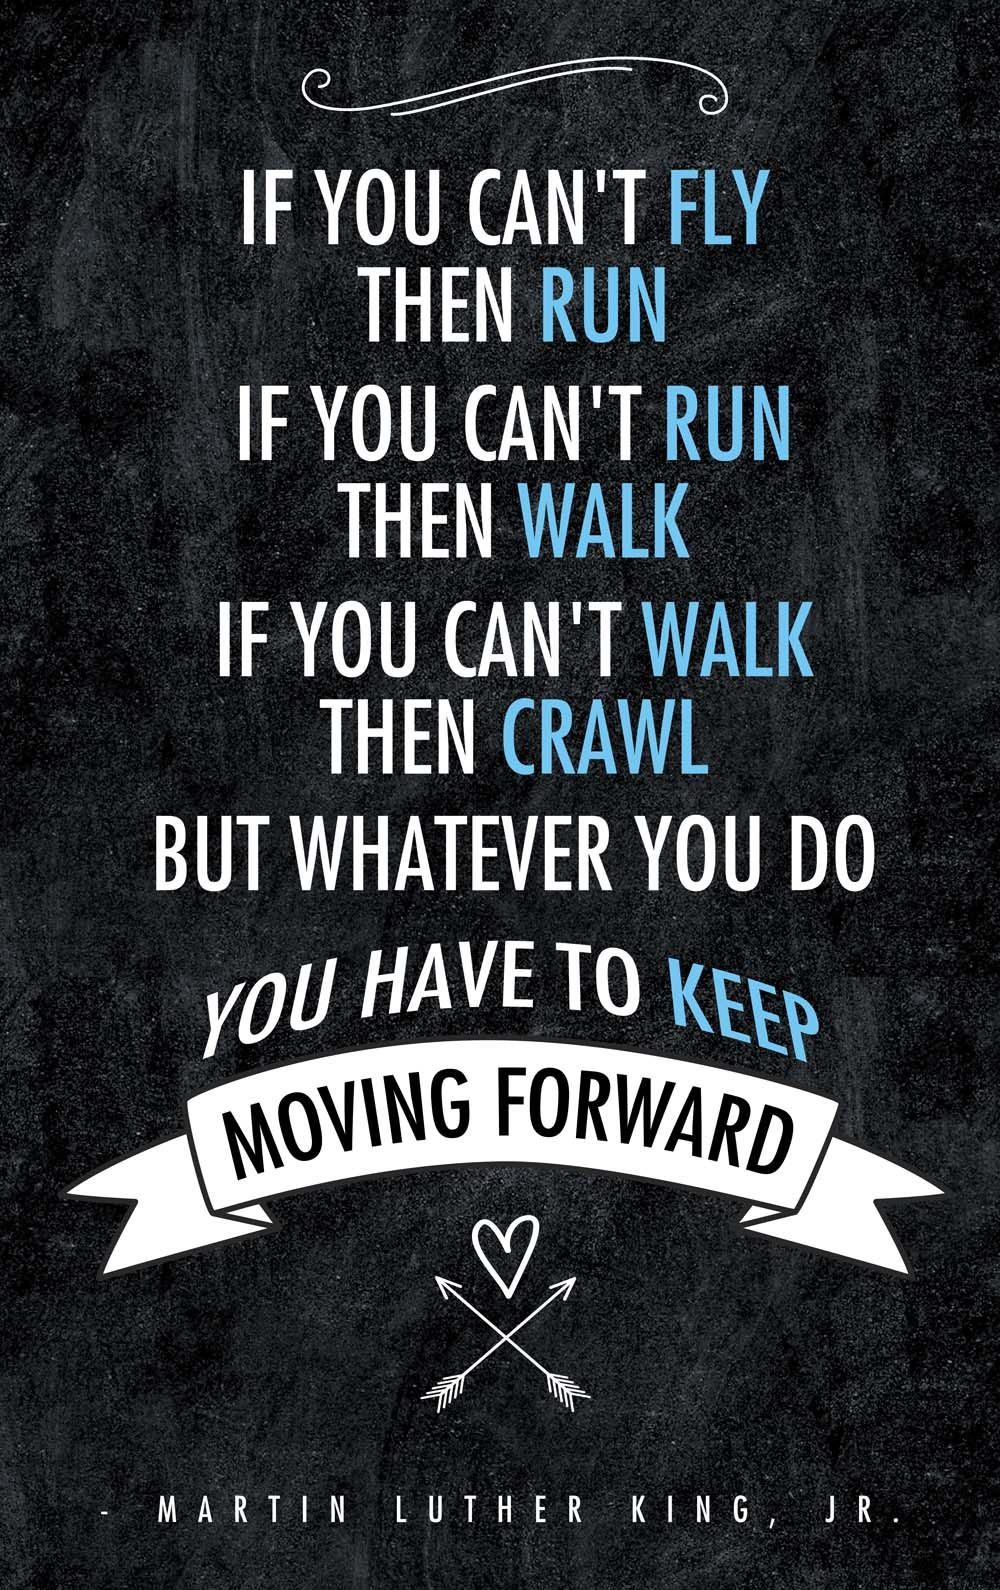 Moving Forward Quotes Keep Moving Forward #quote #martinlutherking  Inspiration Quotes .